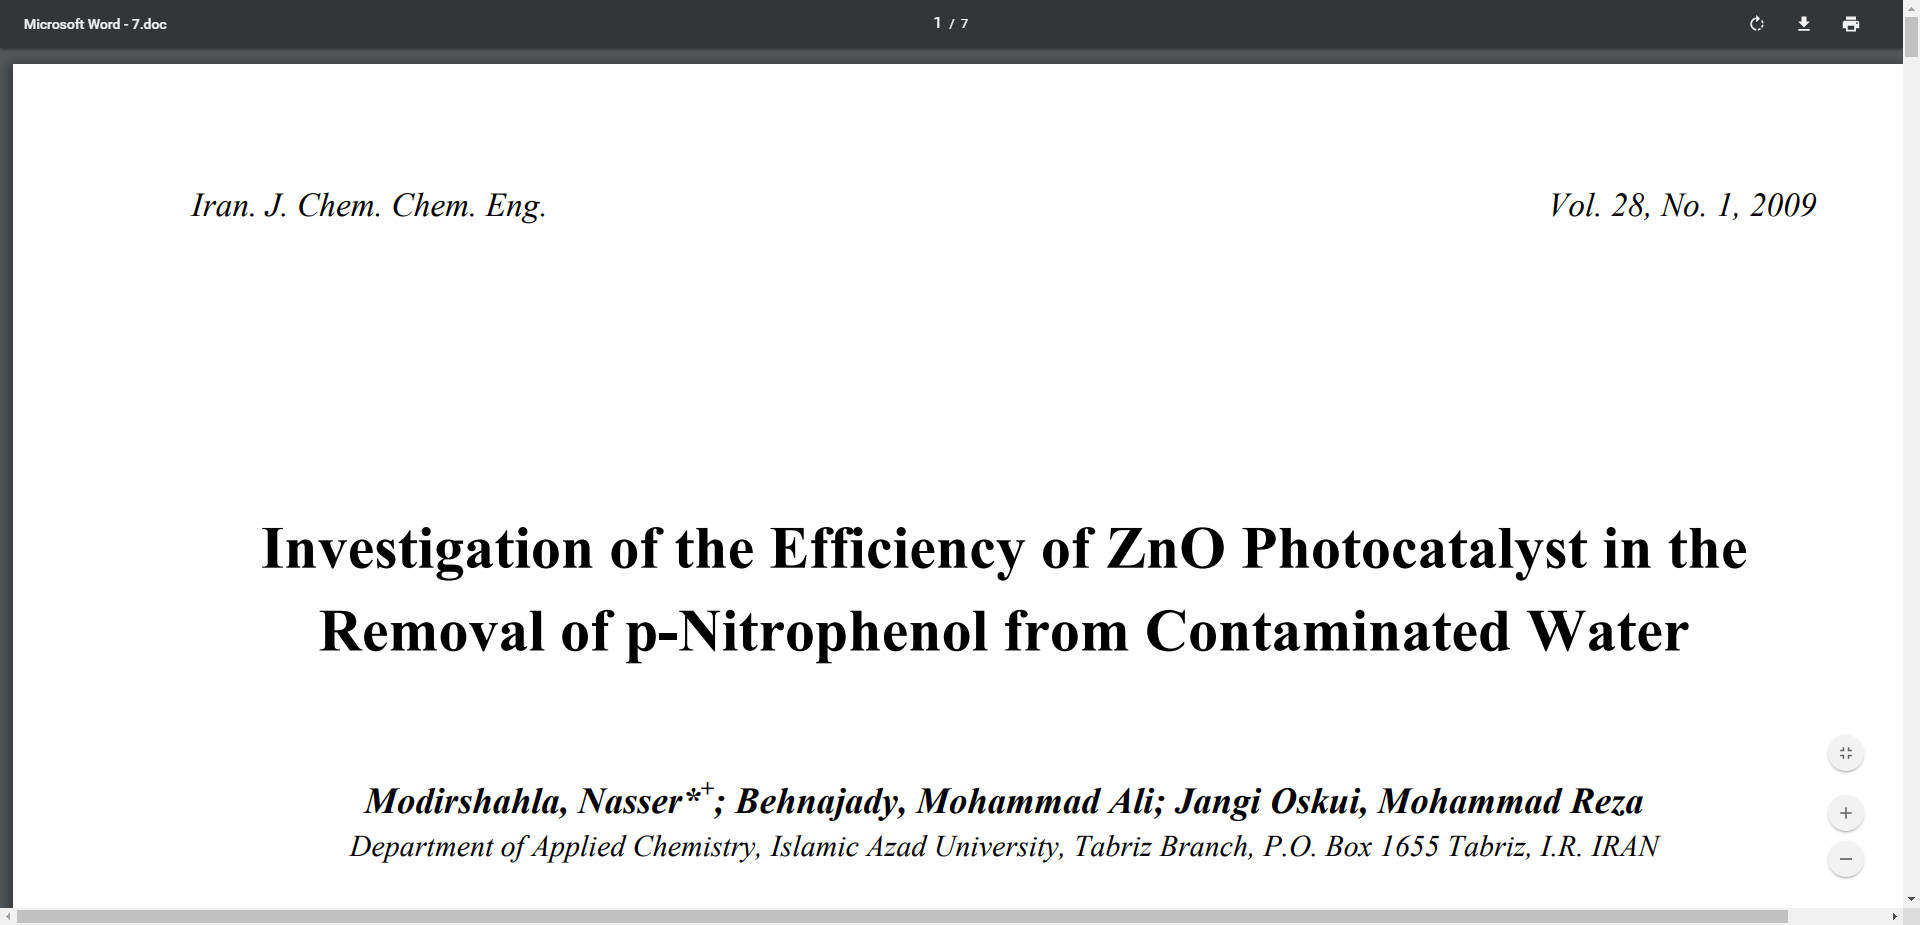 Investigation of the Efficiency of ZnO Photocatalyst